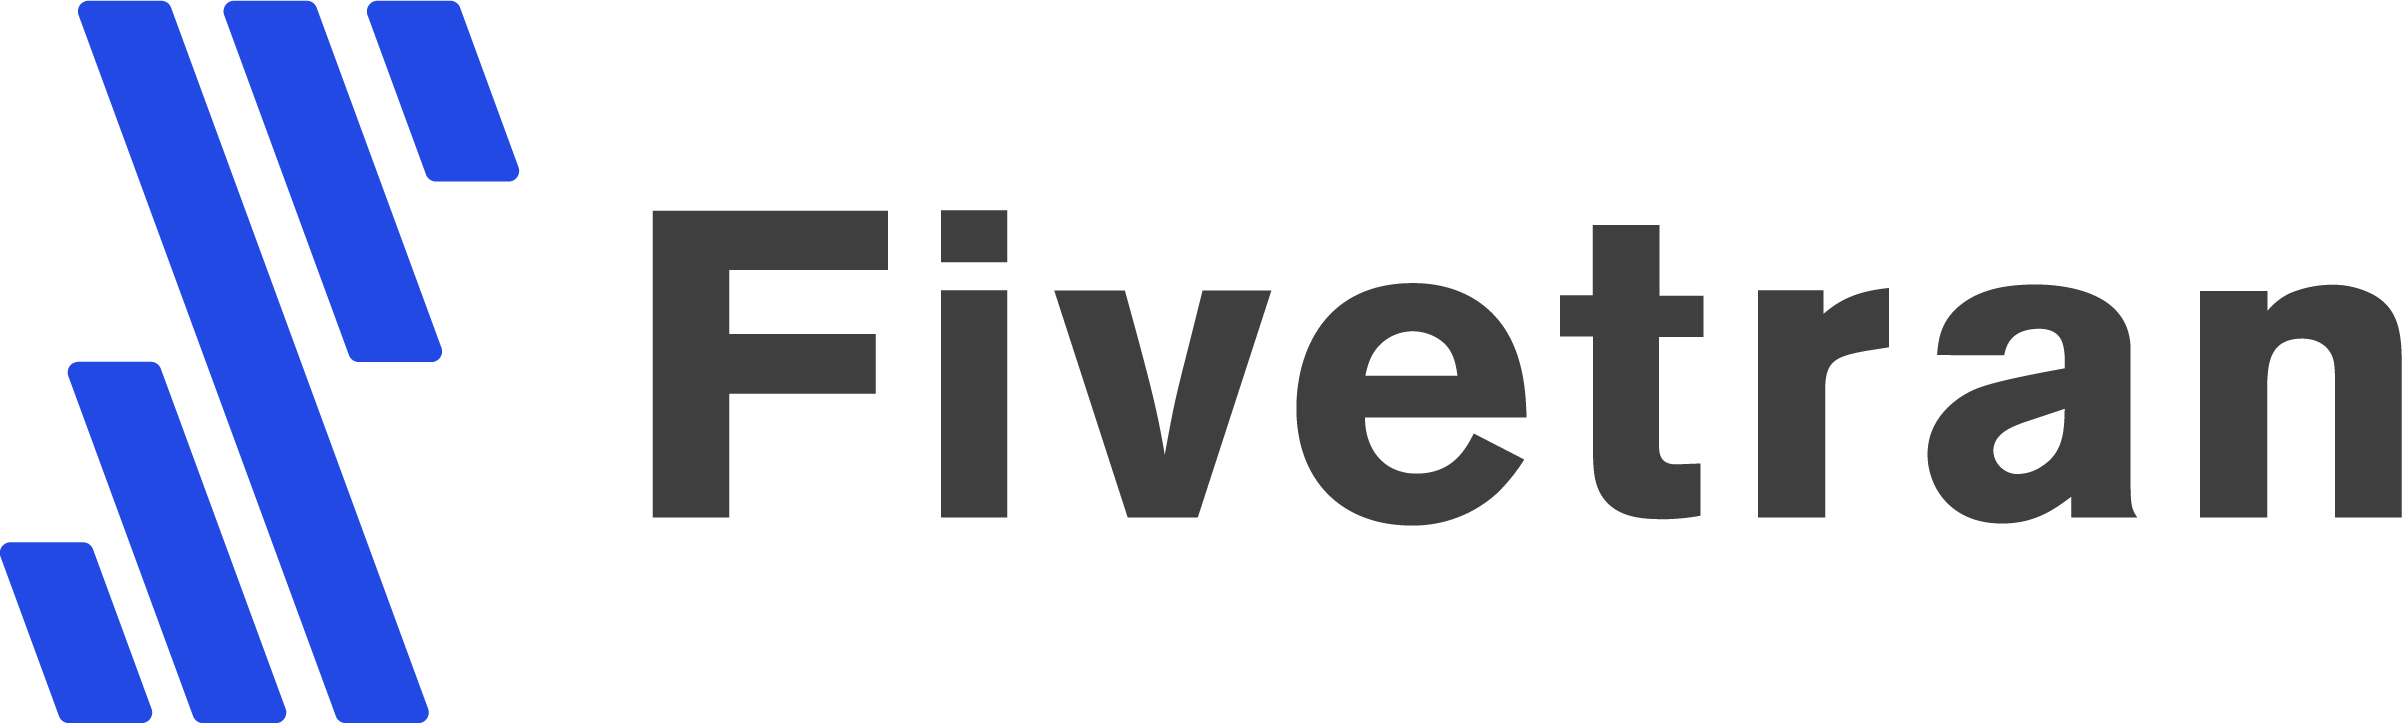 marketing analytics platform - fivetran